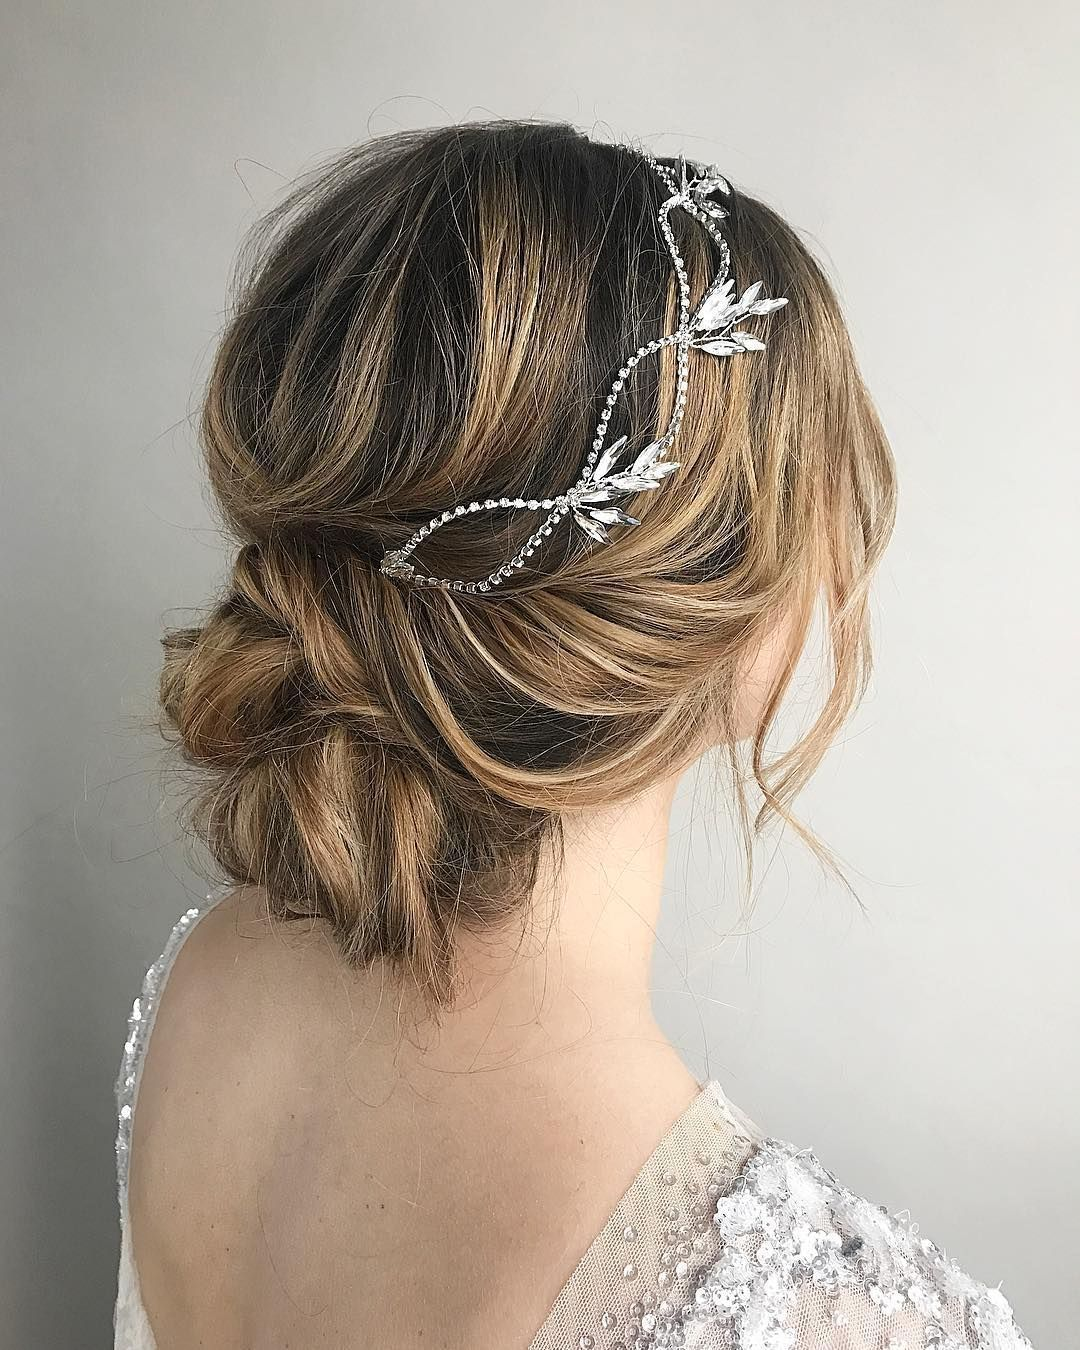 100 gorgeous wedding hair from ceremony to reception | brautfrisur